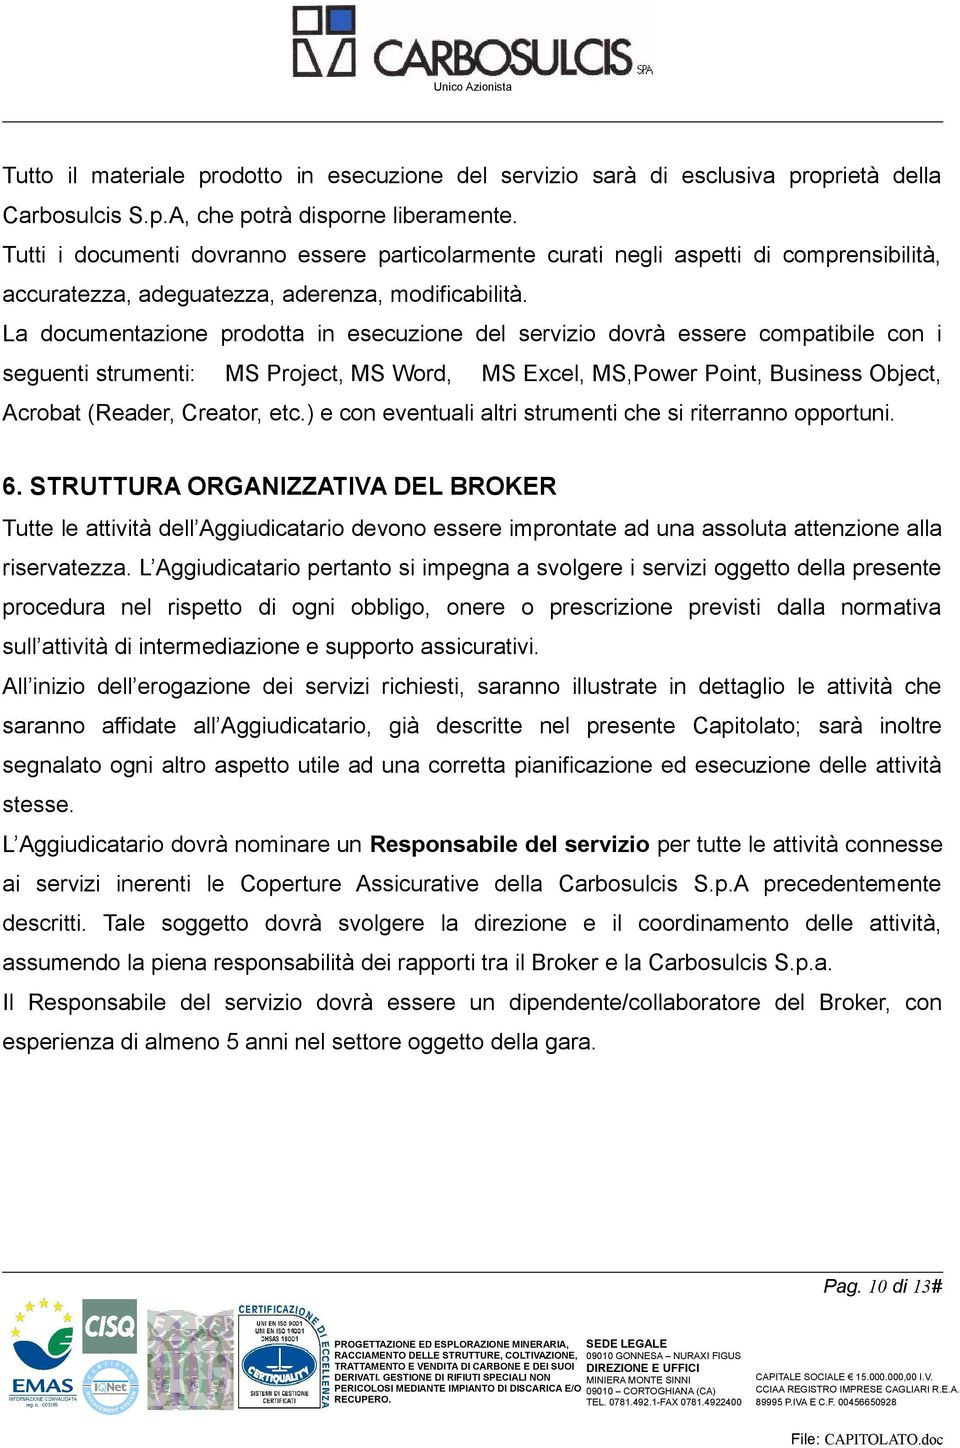 La documentazione prodotta in esecuzione del servizio dovrà essere compatibile con i seguenti strumenti: MS Project, MS Word, MS Excel, MS,Power Point, Business Object, Acrobat (Reader, Creator, etc.